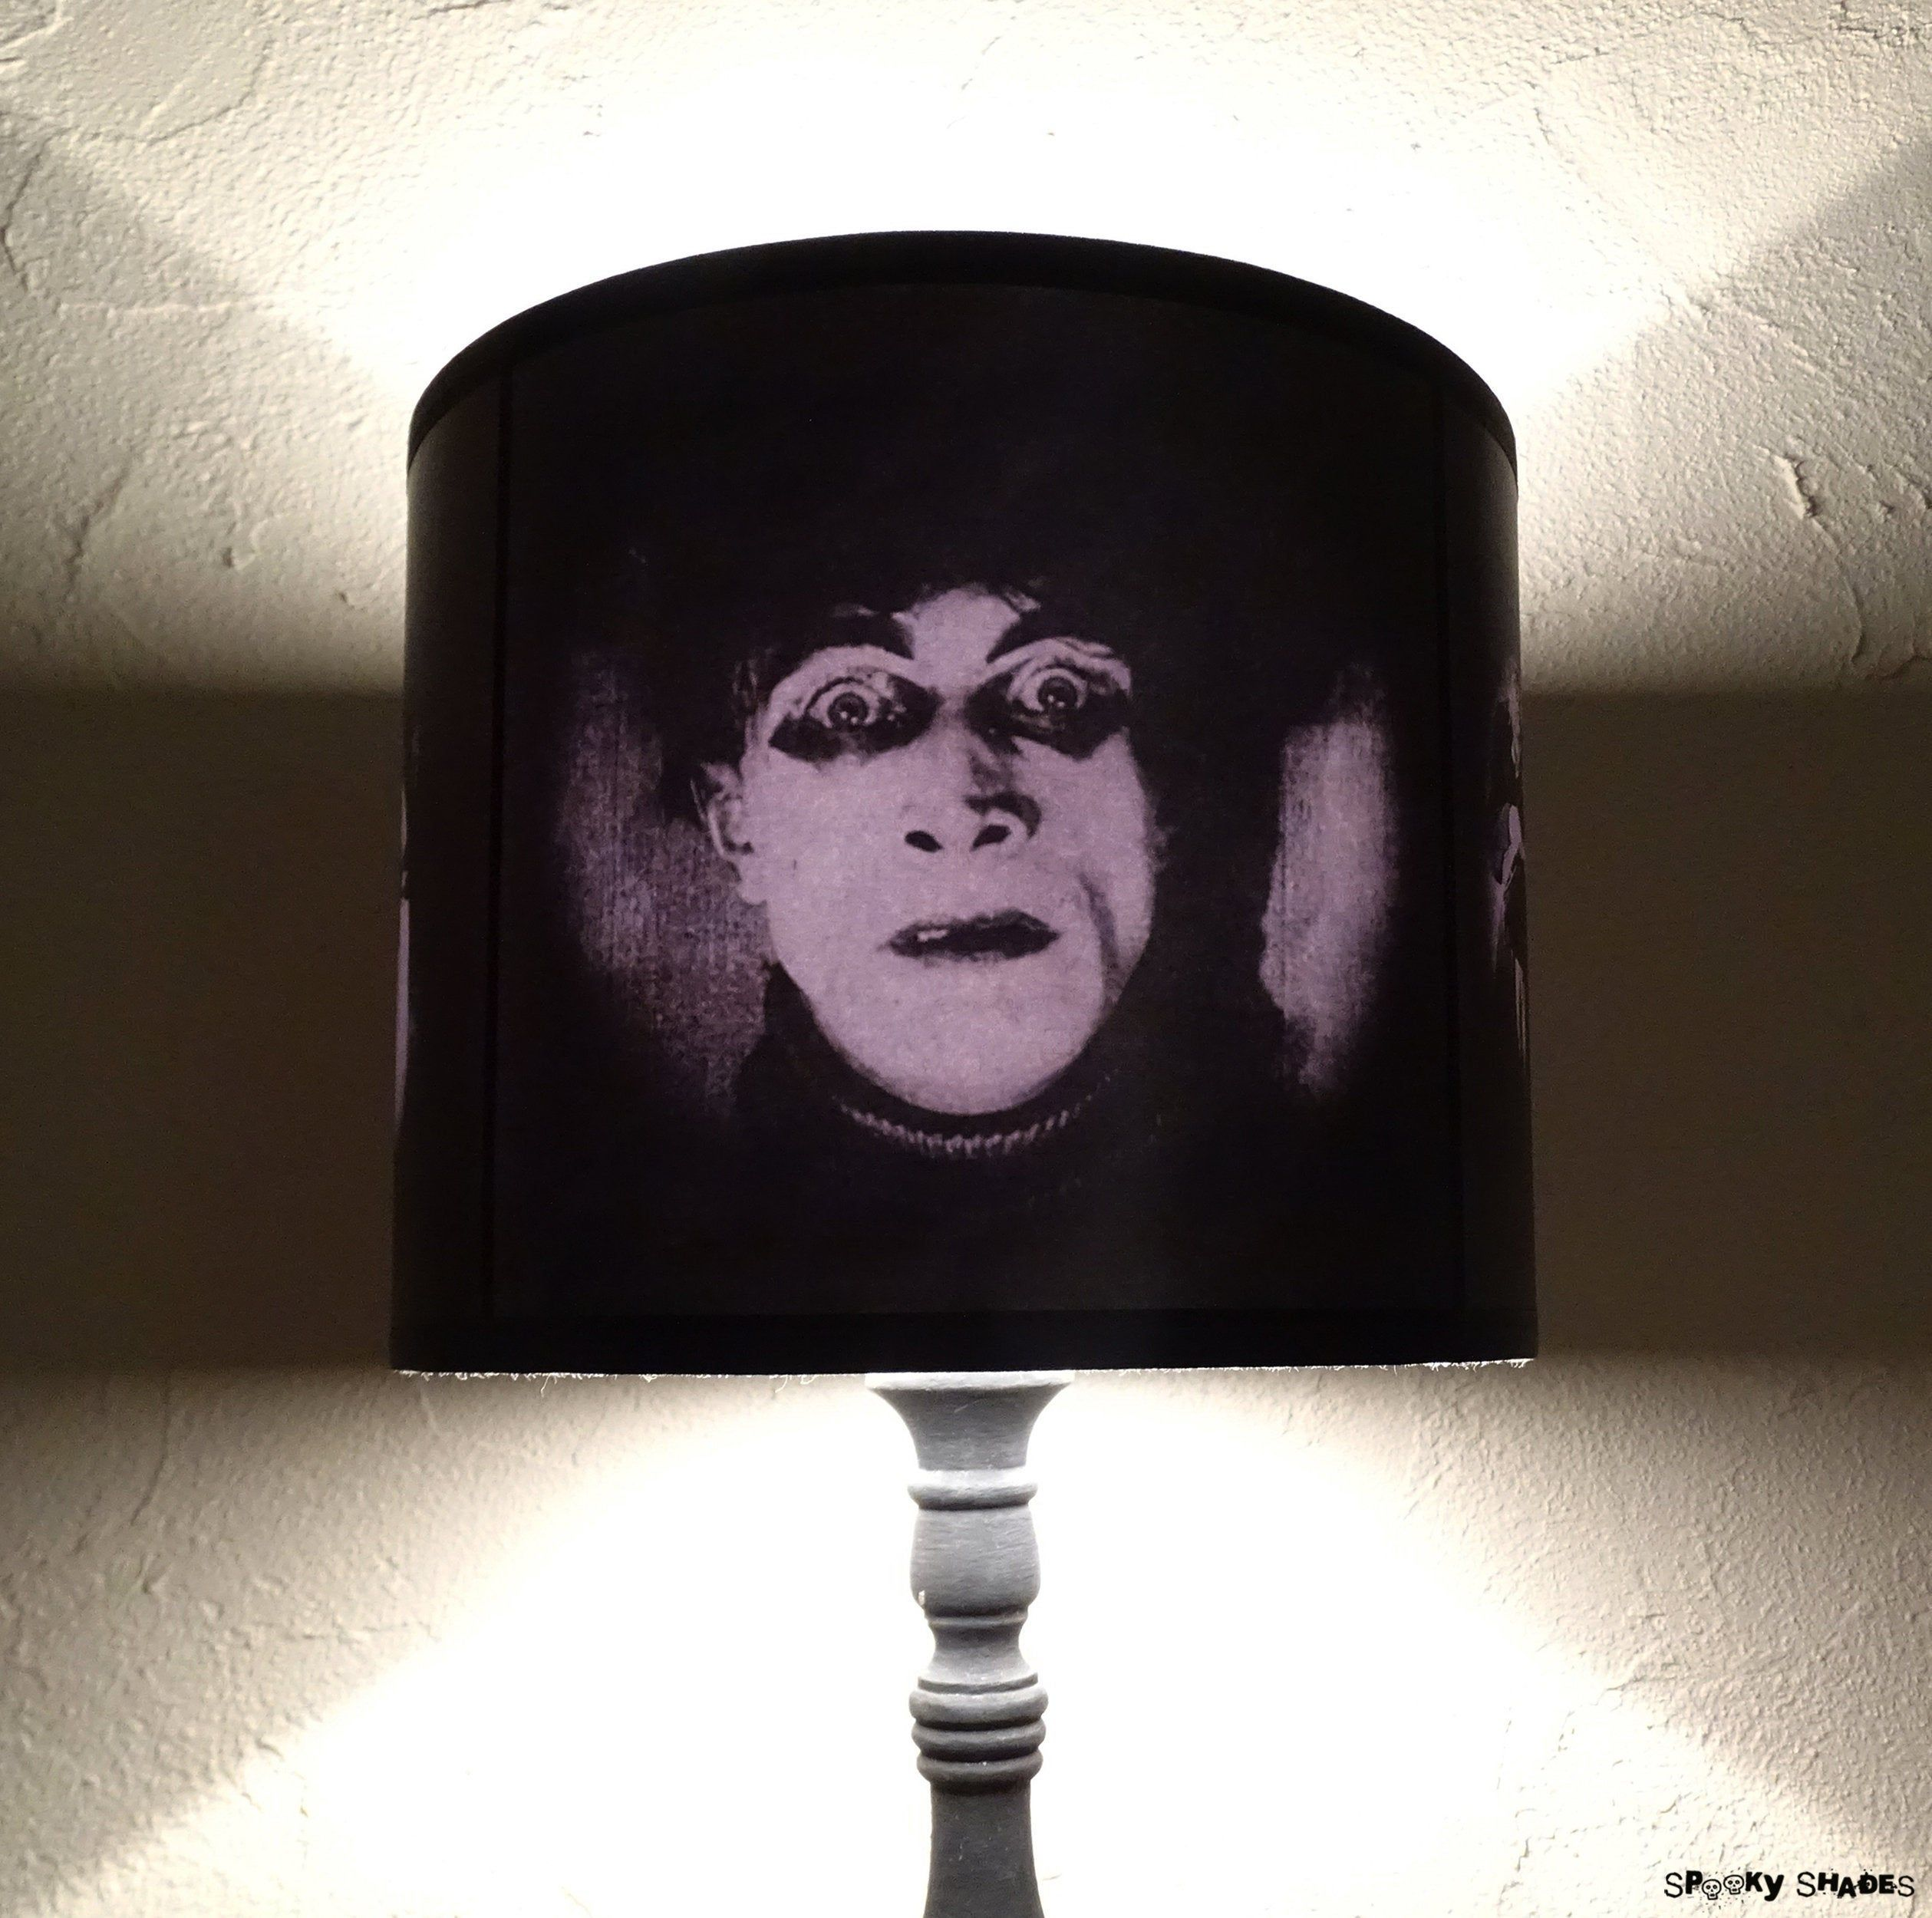 The Cabinet Of Dr Caligari lamp shade lampshade - Halloween decor, Gothic Home Decor, classic horror movie, morbid, table light shade #gothichome